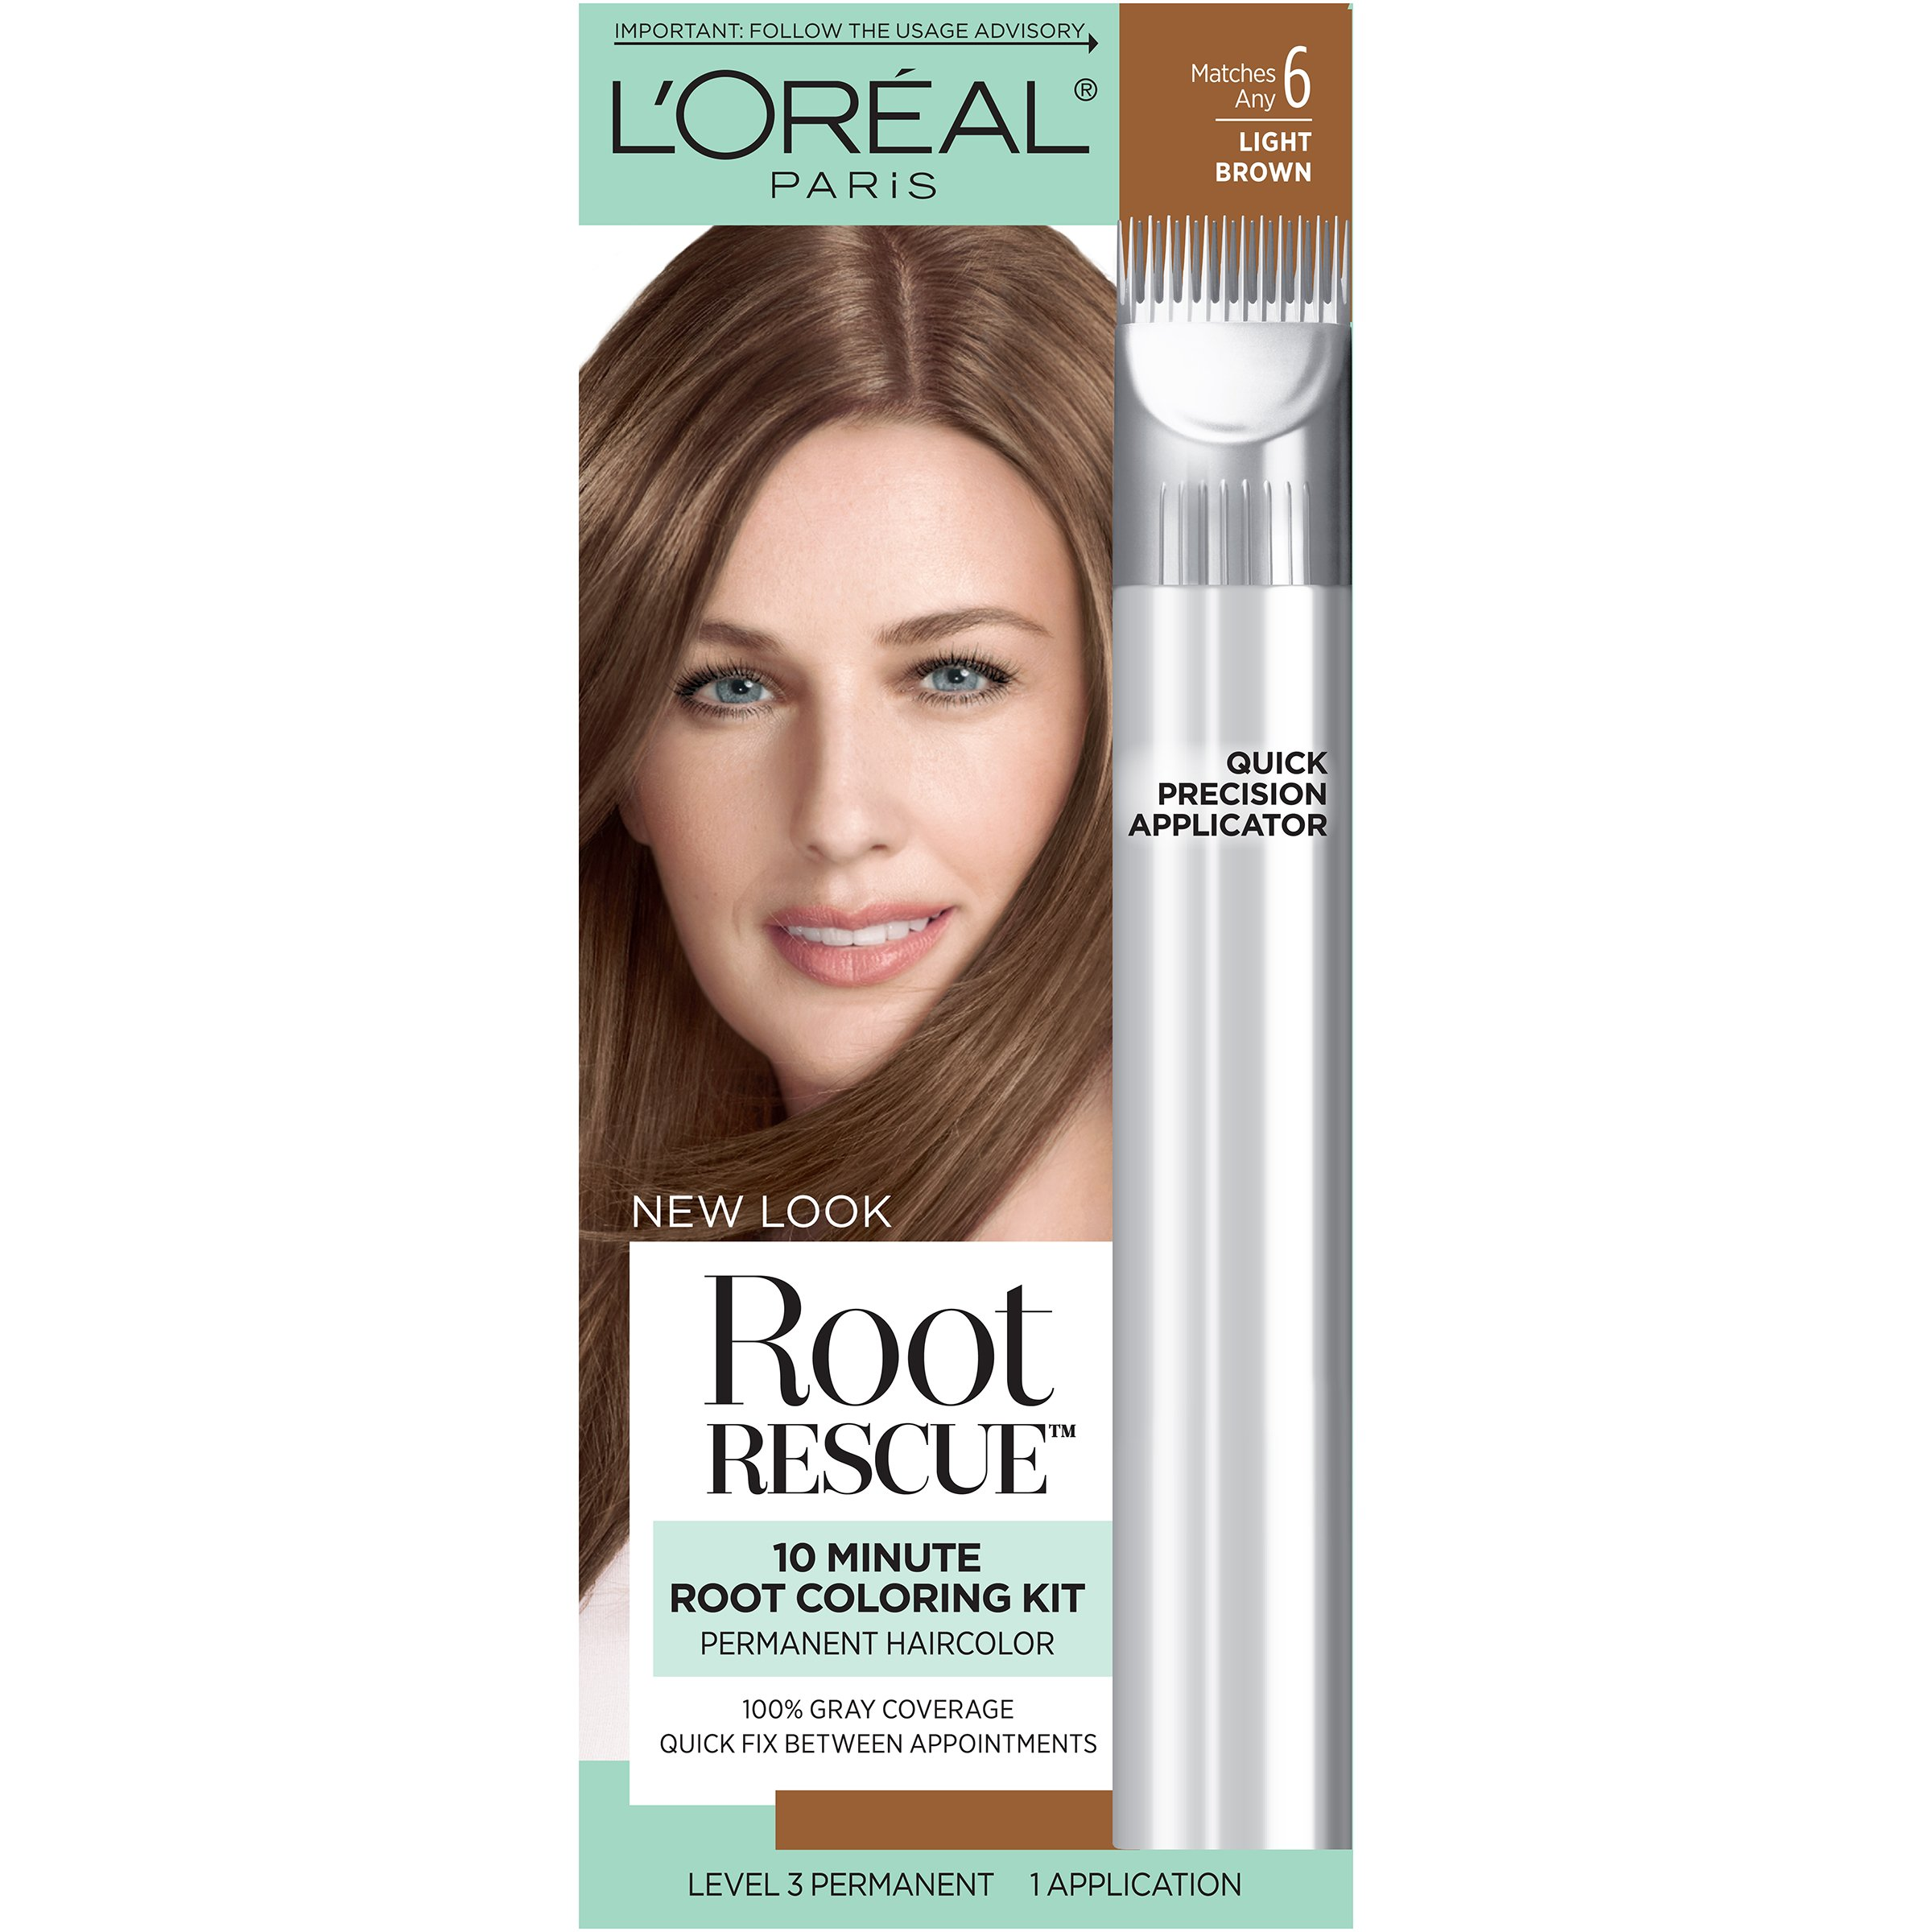 L'Oréal Paris Root Rescue Hair Color, 6 Light Brown